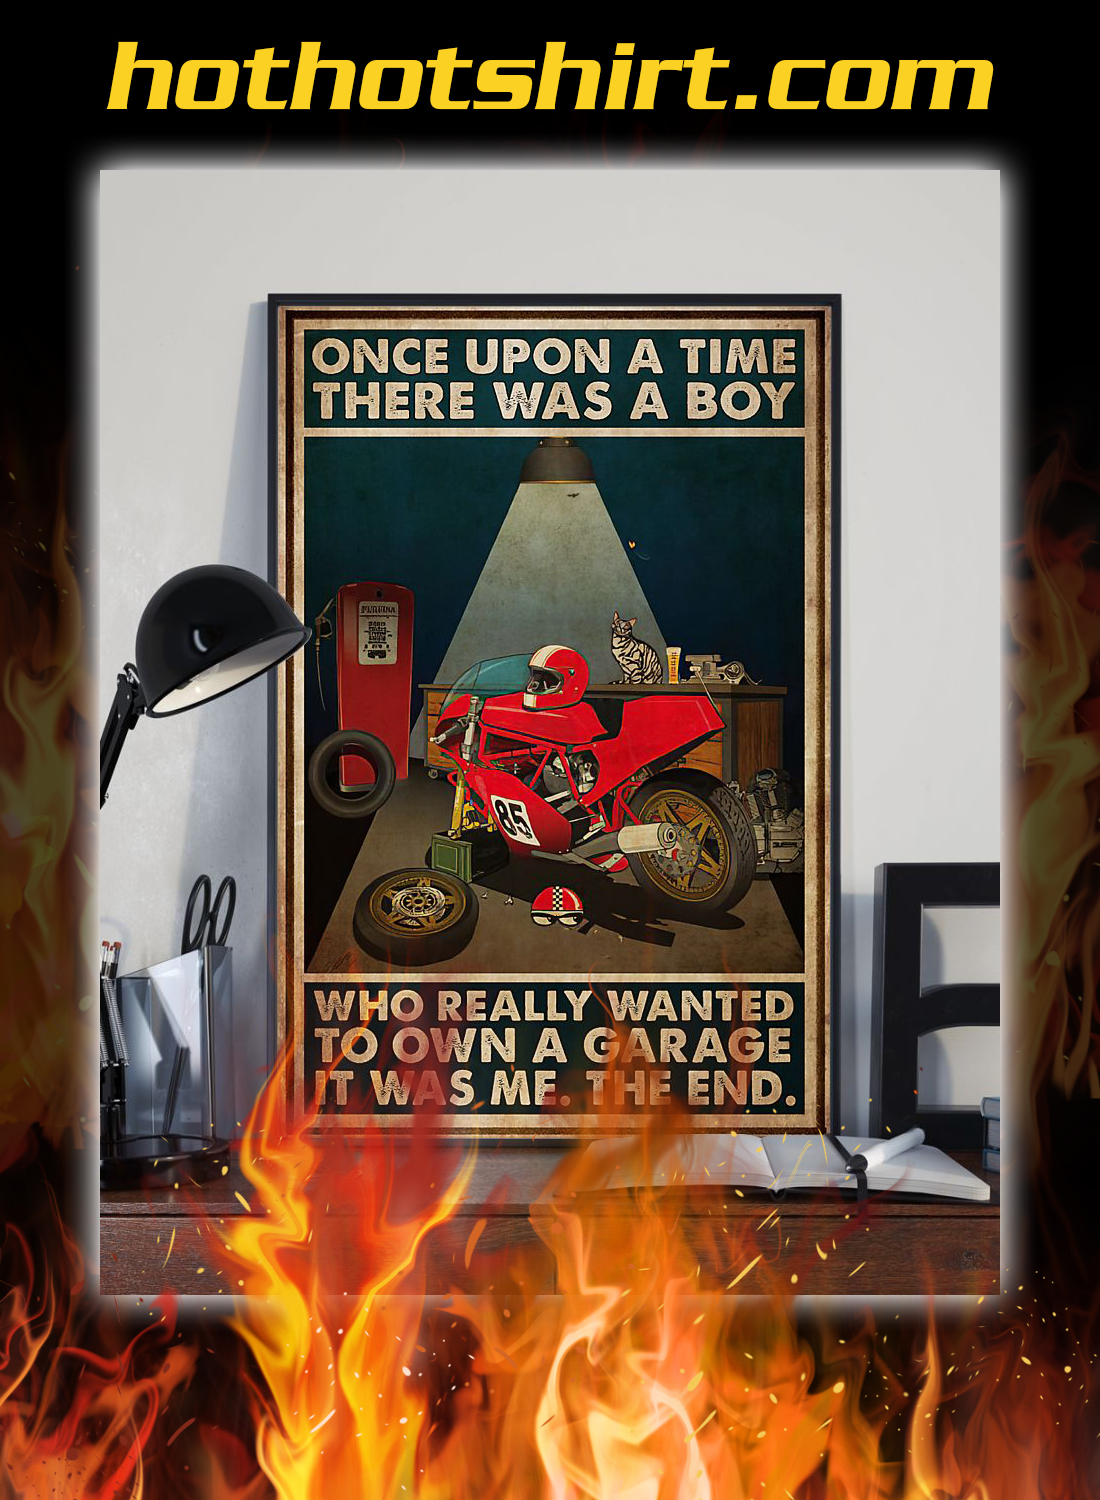 Once upon a time there was a boy who really wanted to own a garage poster 2